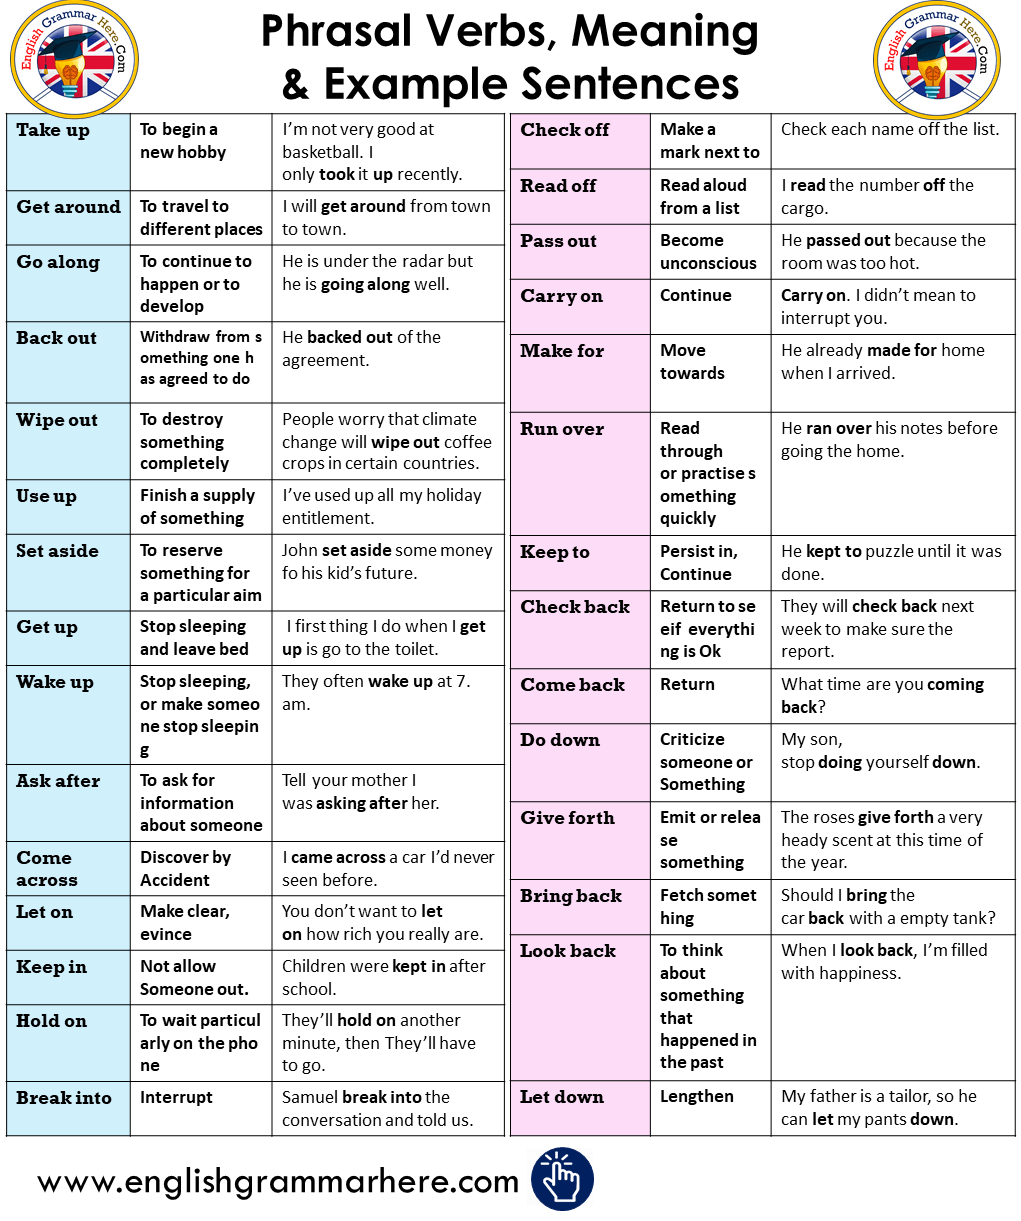 English Most Important Phrasal Verbs, Meaning & Example Sentences